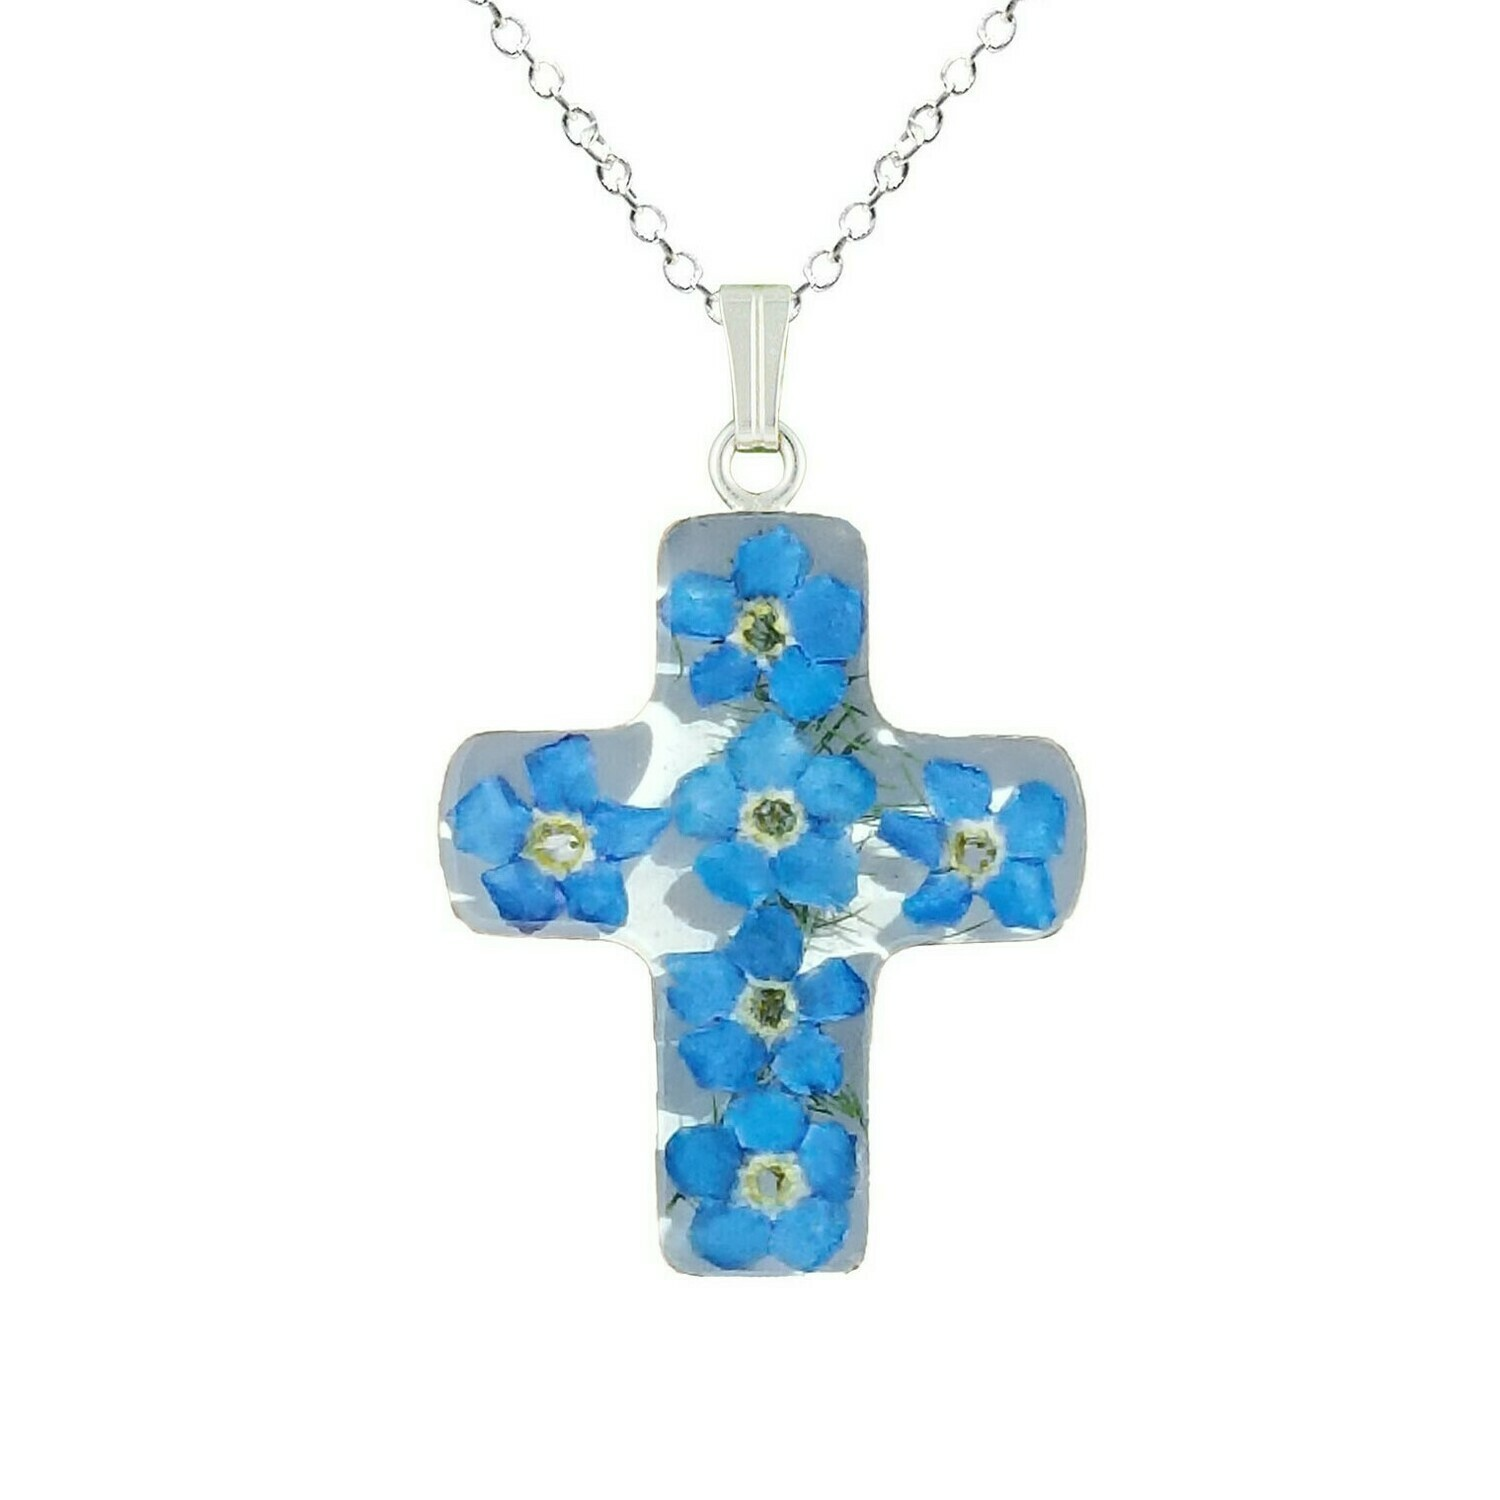 Forget-Me-Not Necklace, Medium Cross, White Background